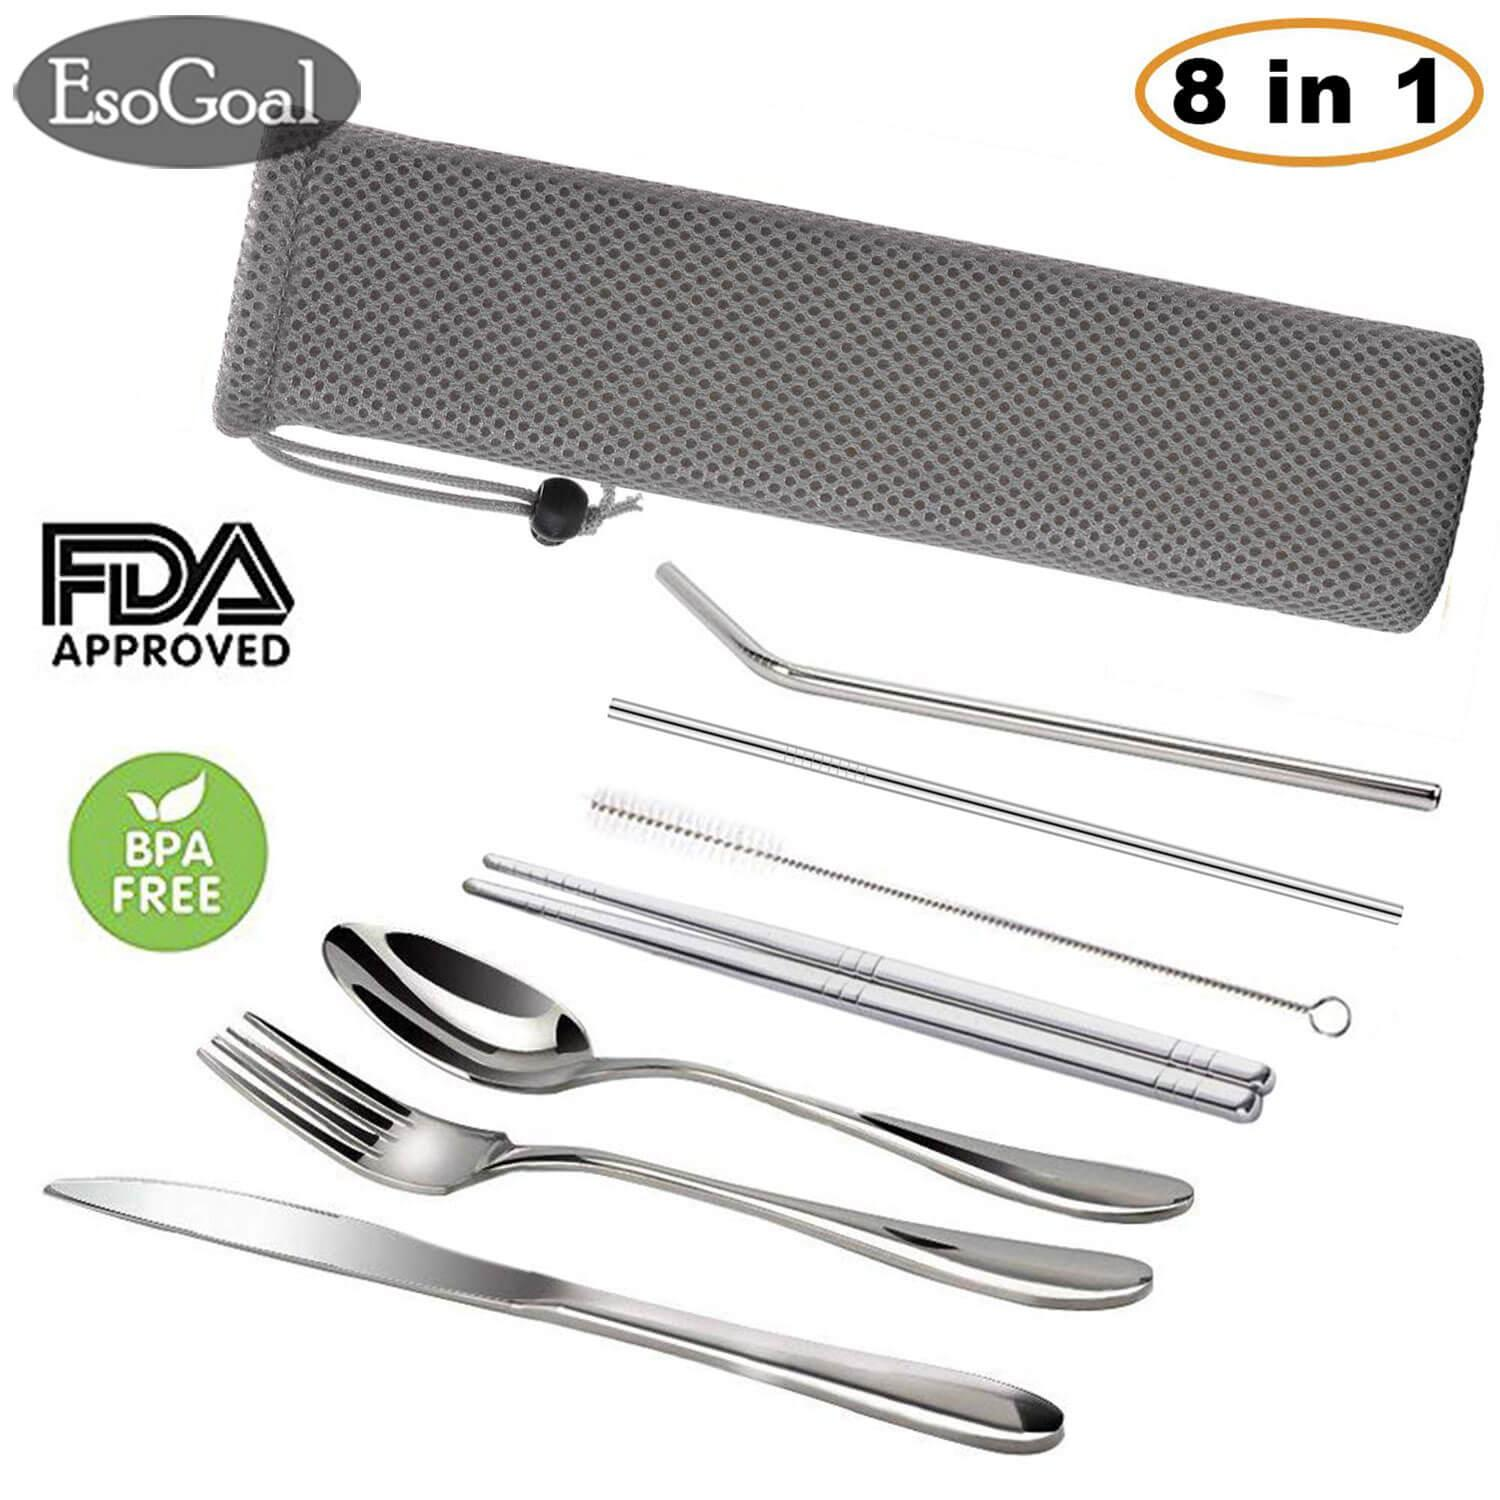 Esogoal Sedotan Stainless 8pcs/set Stainless Steel Straws Reusable Metal Drinking Straws Including Knifee, Fork, Spoon, Chopsticks, Straight Straw, Bent Straw, Cleaning Brush And Carry Bag Portable Silverware Utensil Set By Esogoal.